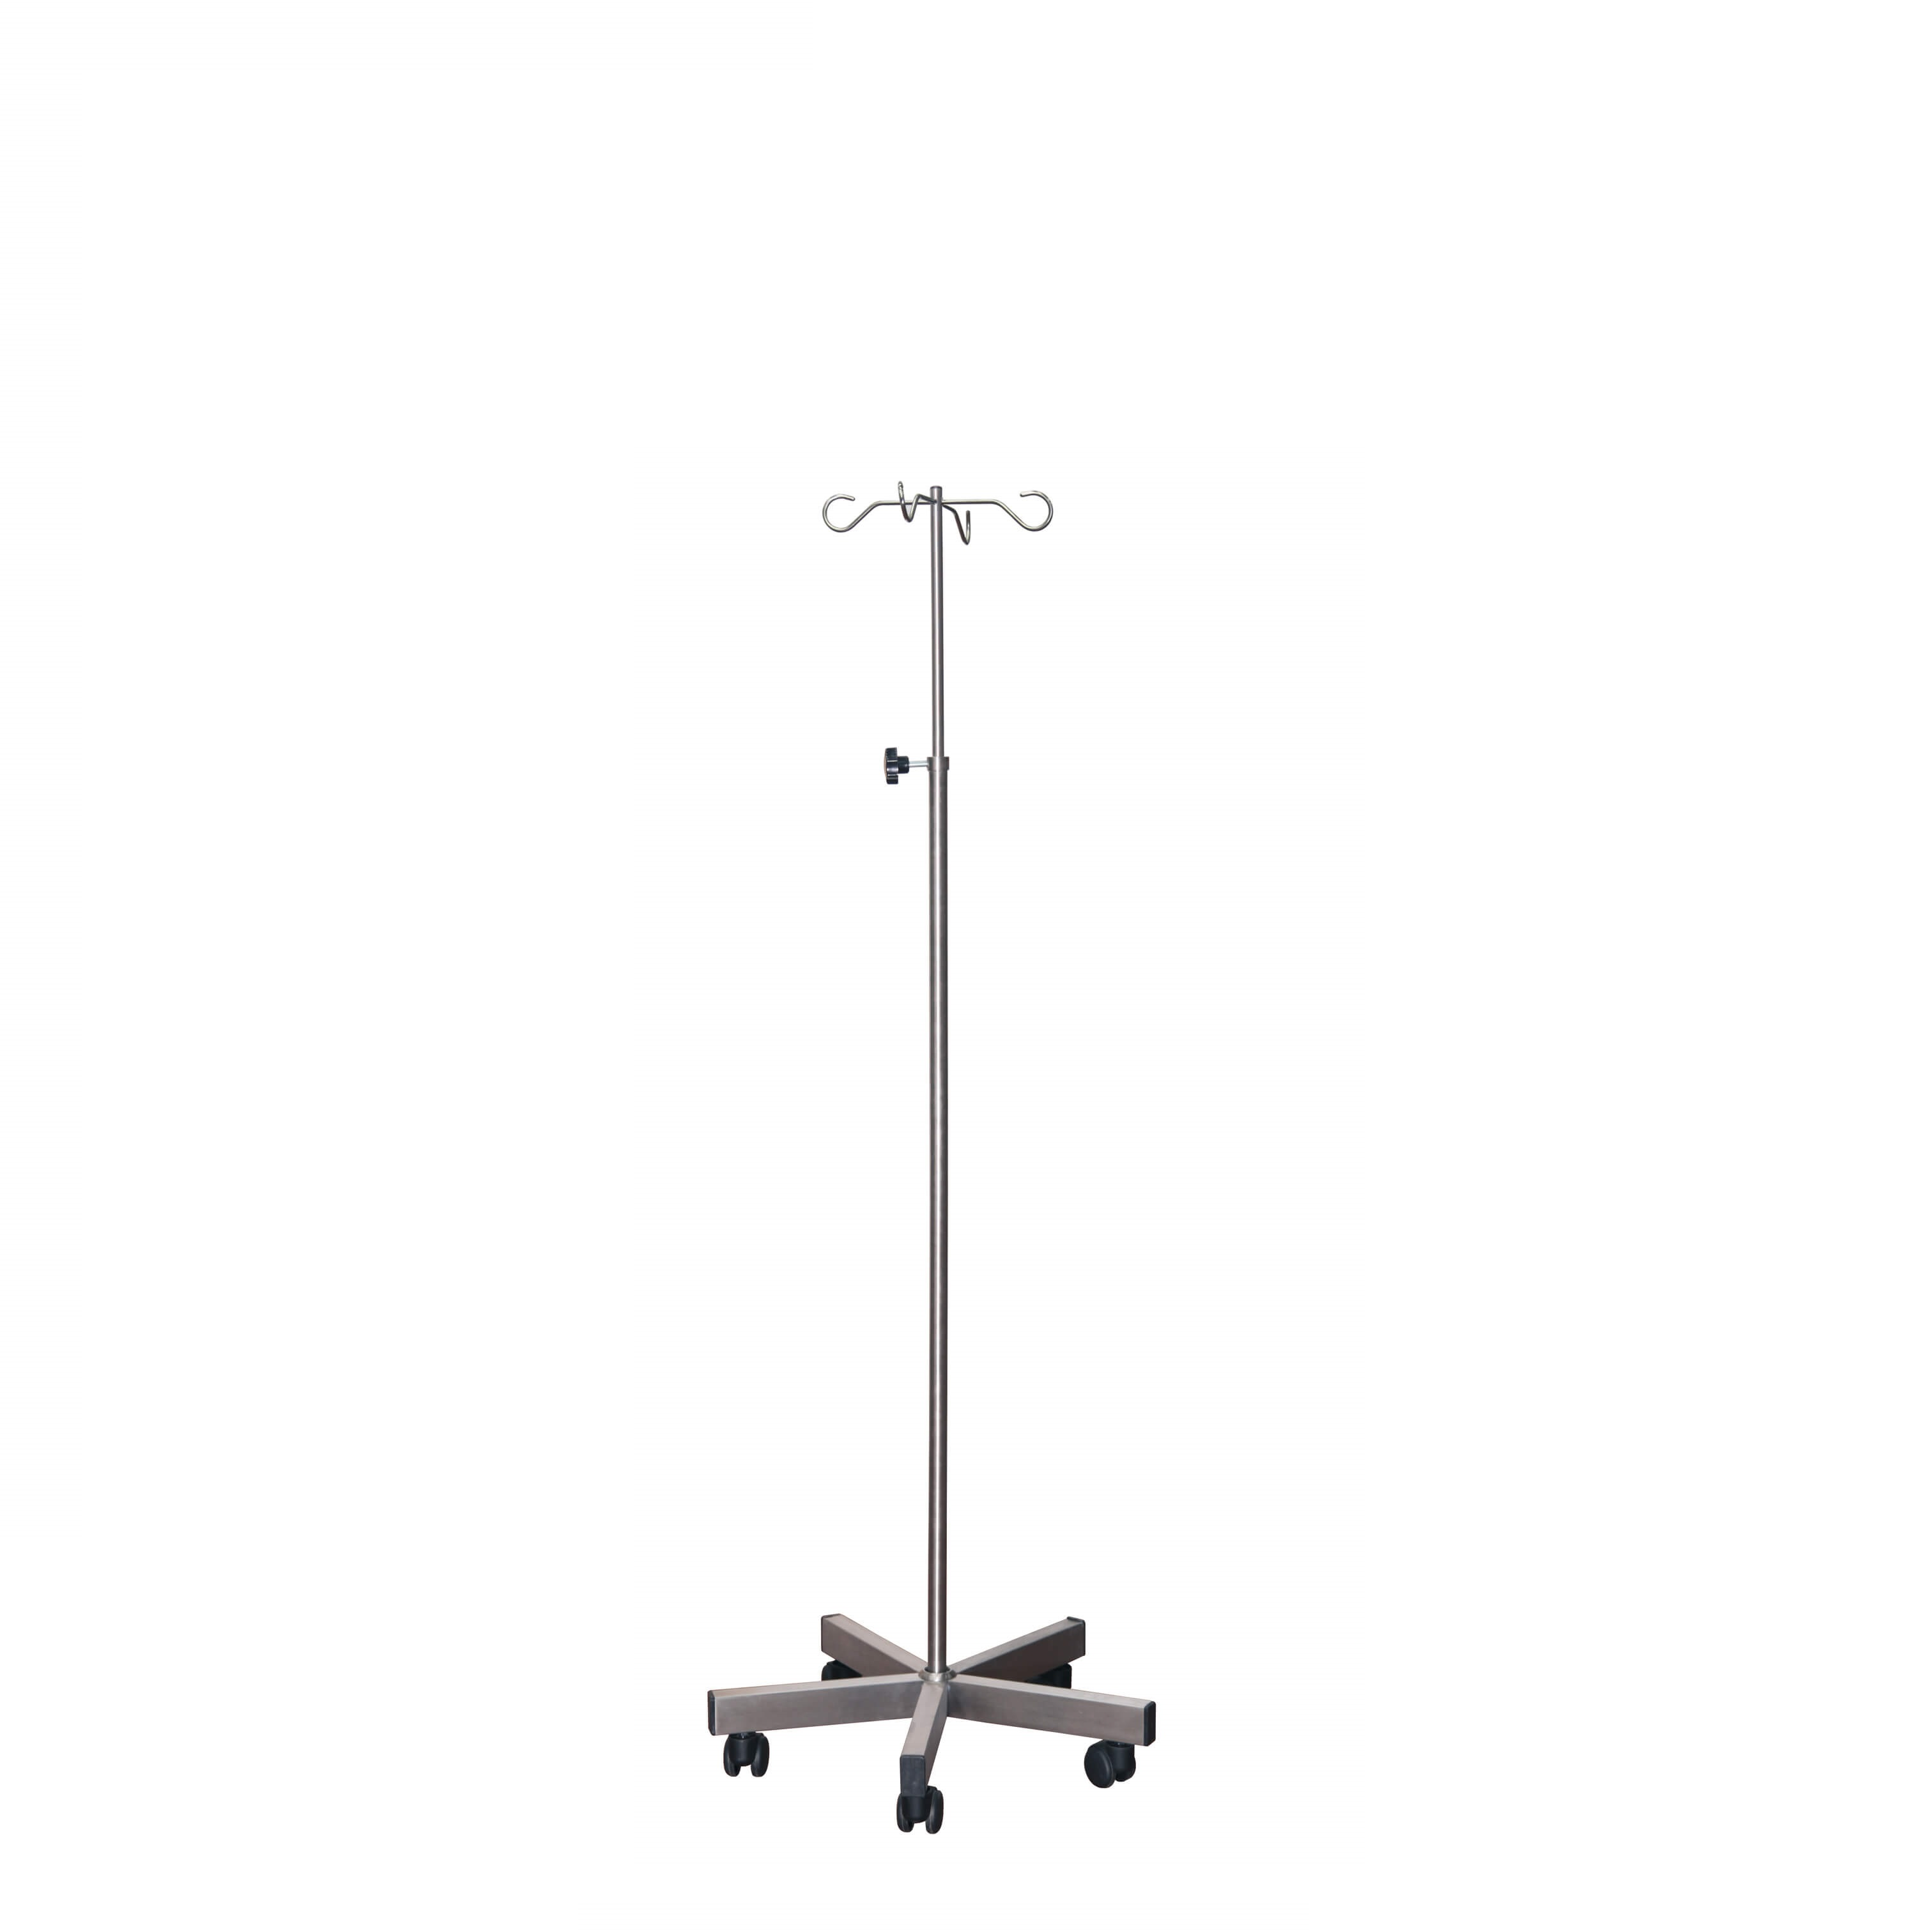 Brushed Stainless Steel Drip Stand with Weighted Base - 4 Chrome Hooks, Anti-static Castors [Sun-IV09]